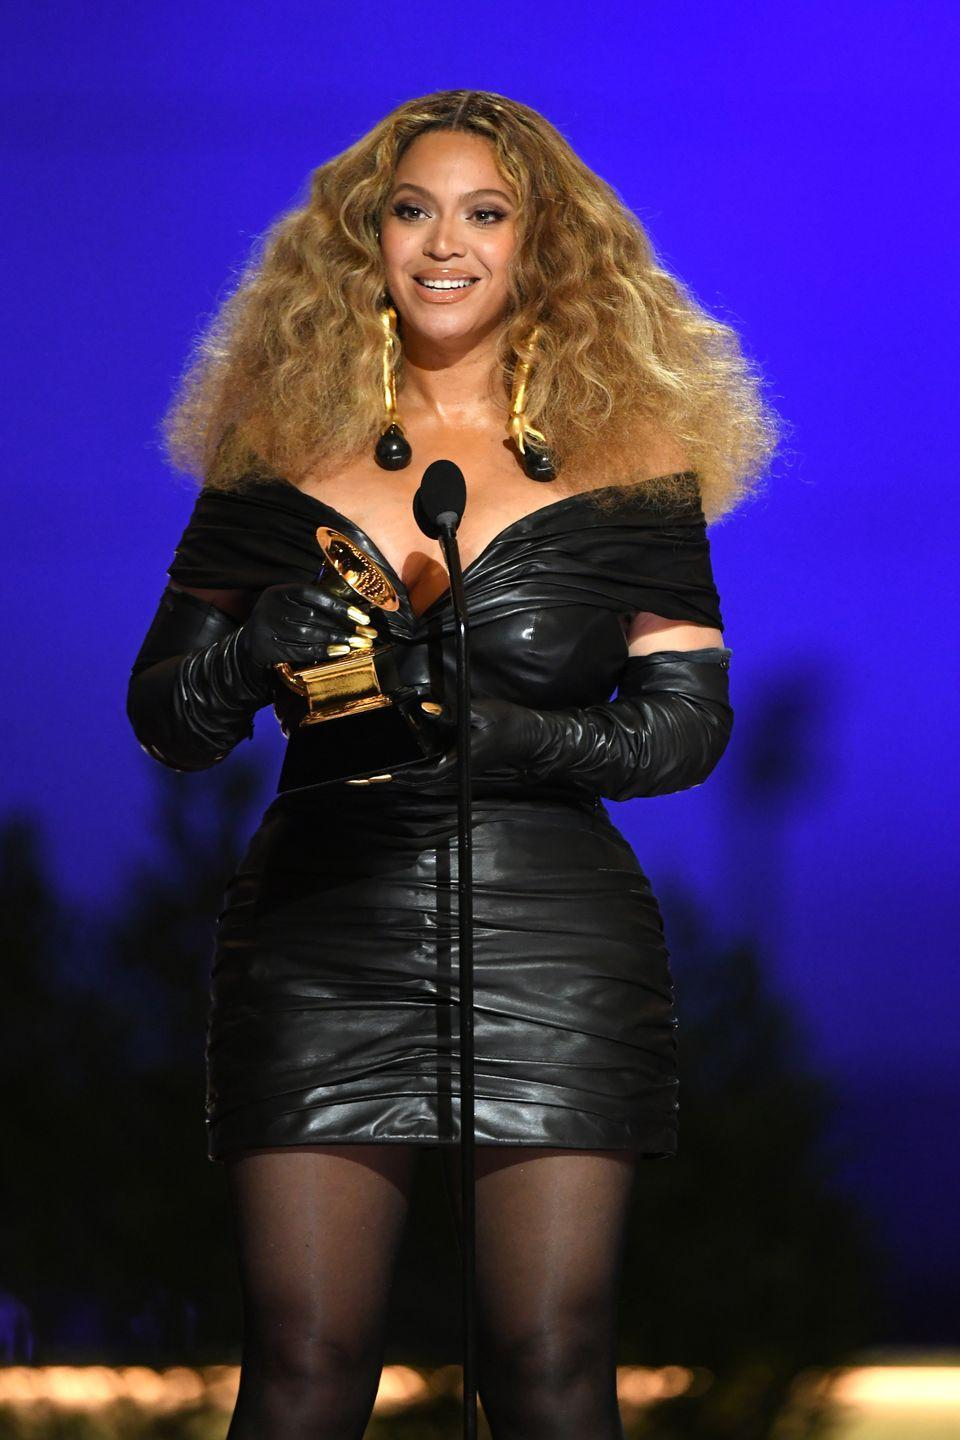 <p>She made history on the night by becoming the most decorated female artist ever after winning her 28th Grammy – and Beyoncé certainly dressed for the occasion. The singer impressed in an off-the-shoulder leather mini dress by Schiaparelli couture, which she teamed with matching leather opera gloves (complete with a painted gold manicure) and statement earrings from the brand.</p>